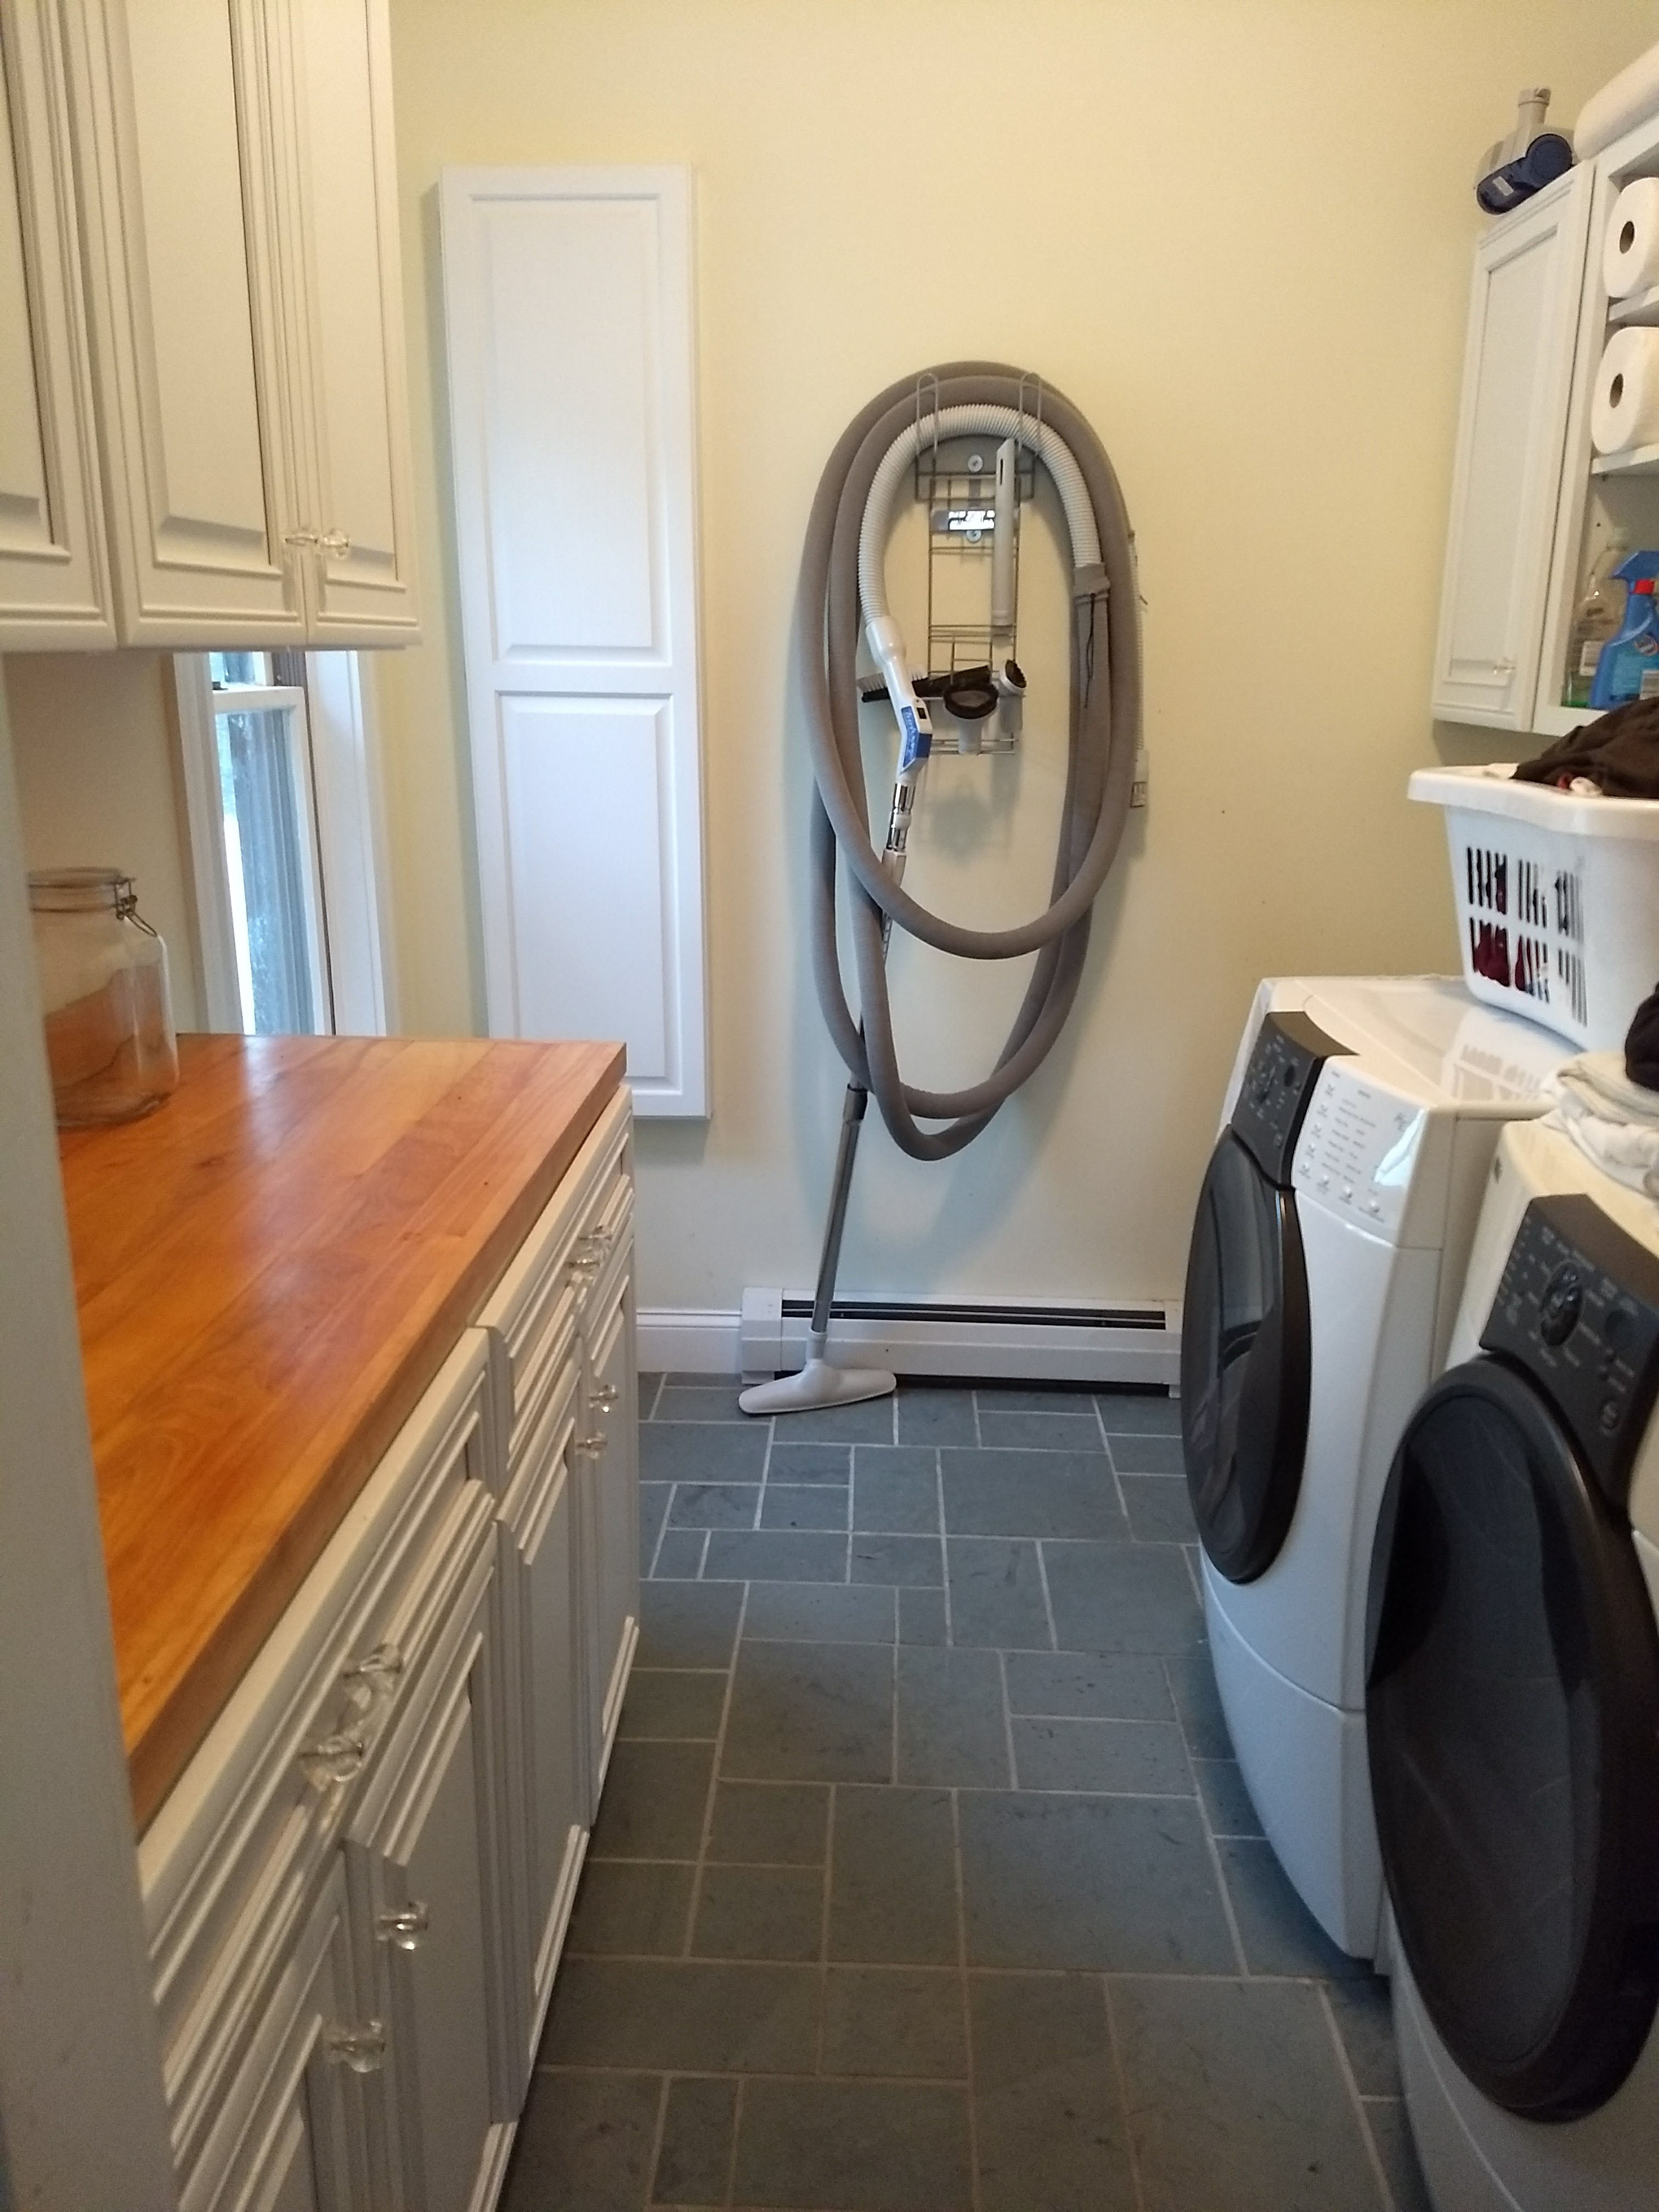 What to think about before building a home laundry room - The